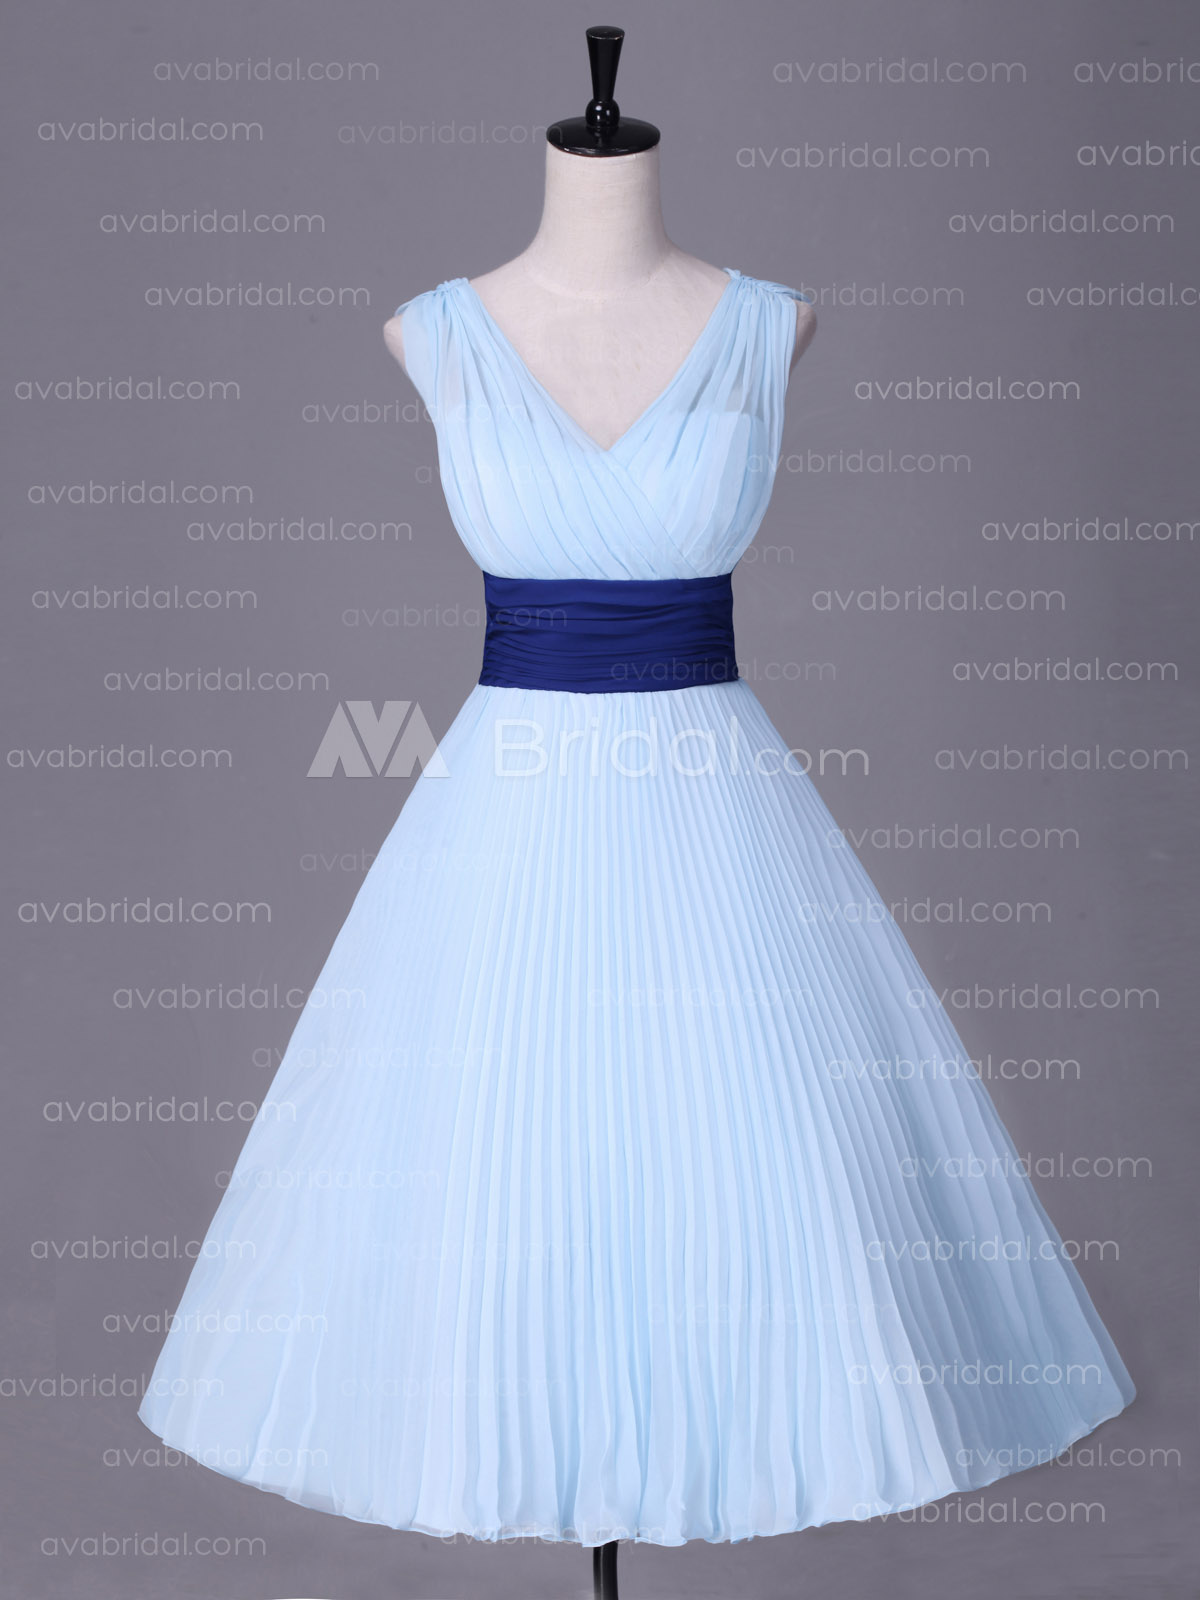 1950s Inspired Tea Length Bridesmaid Dress B486 -Front